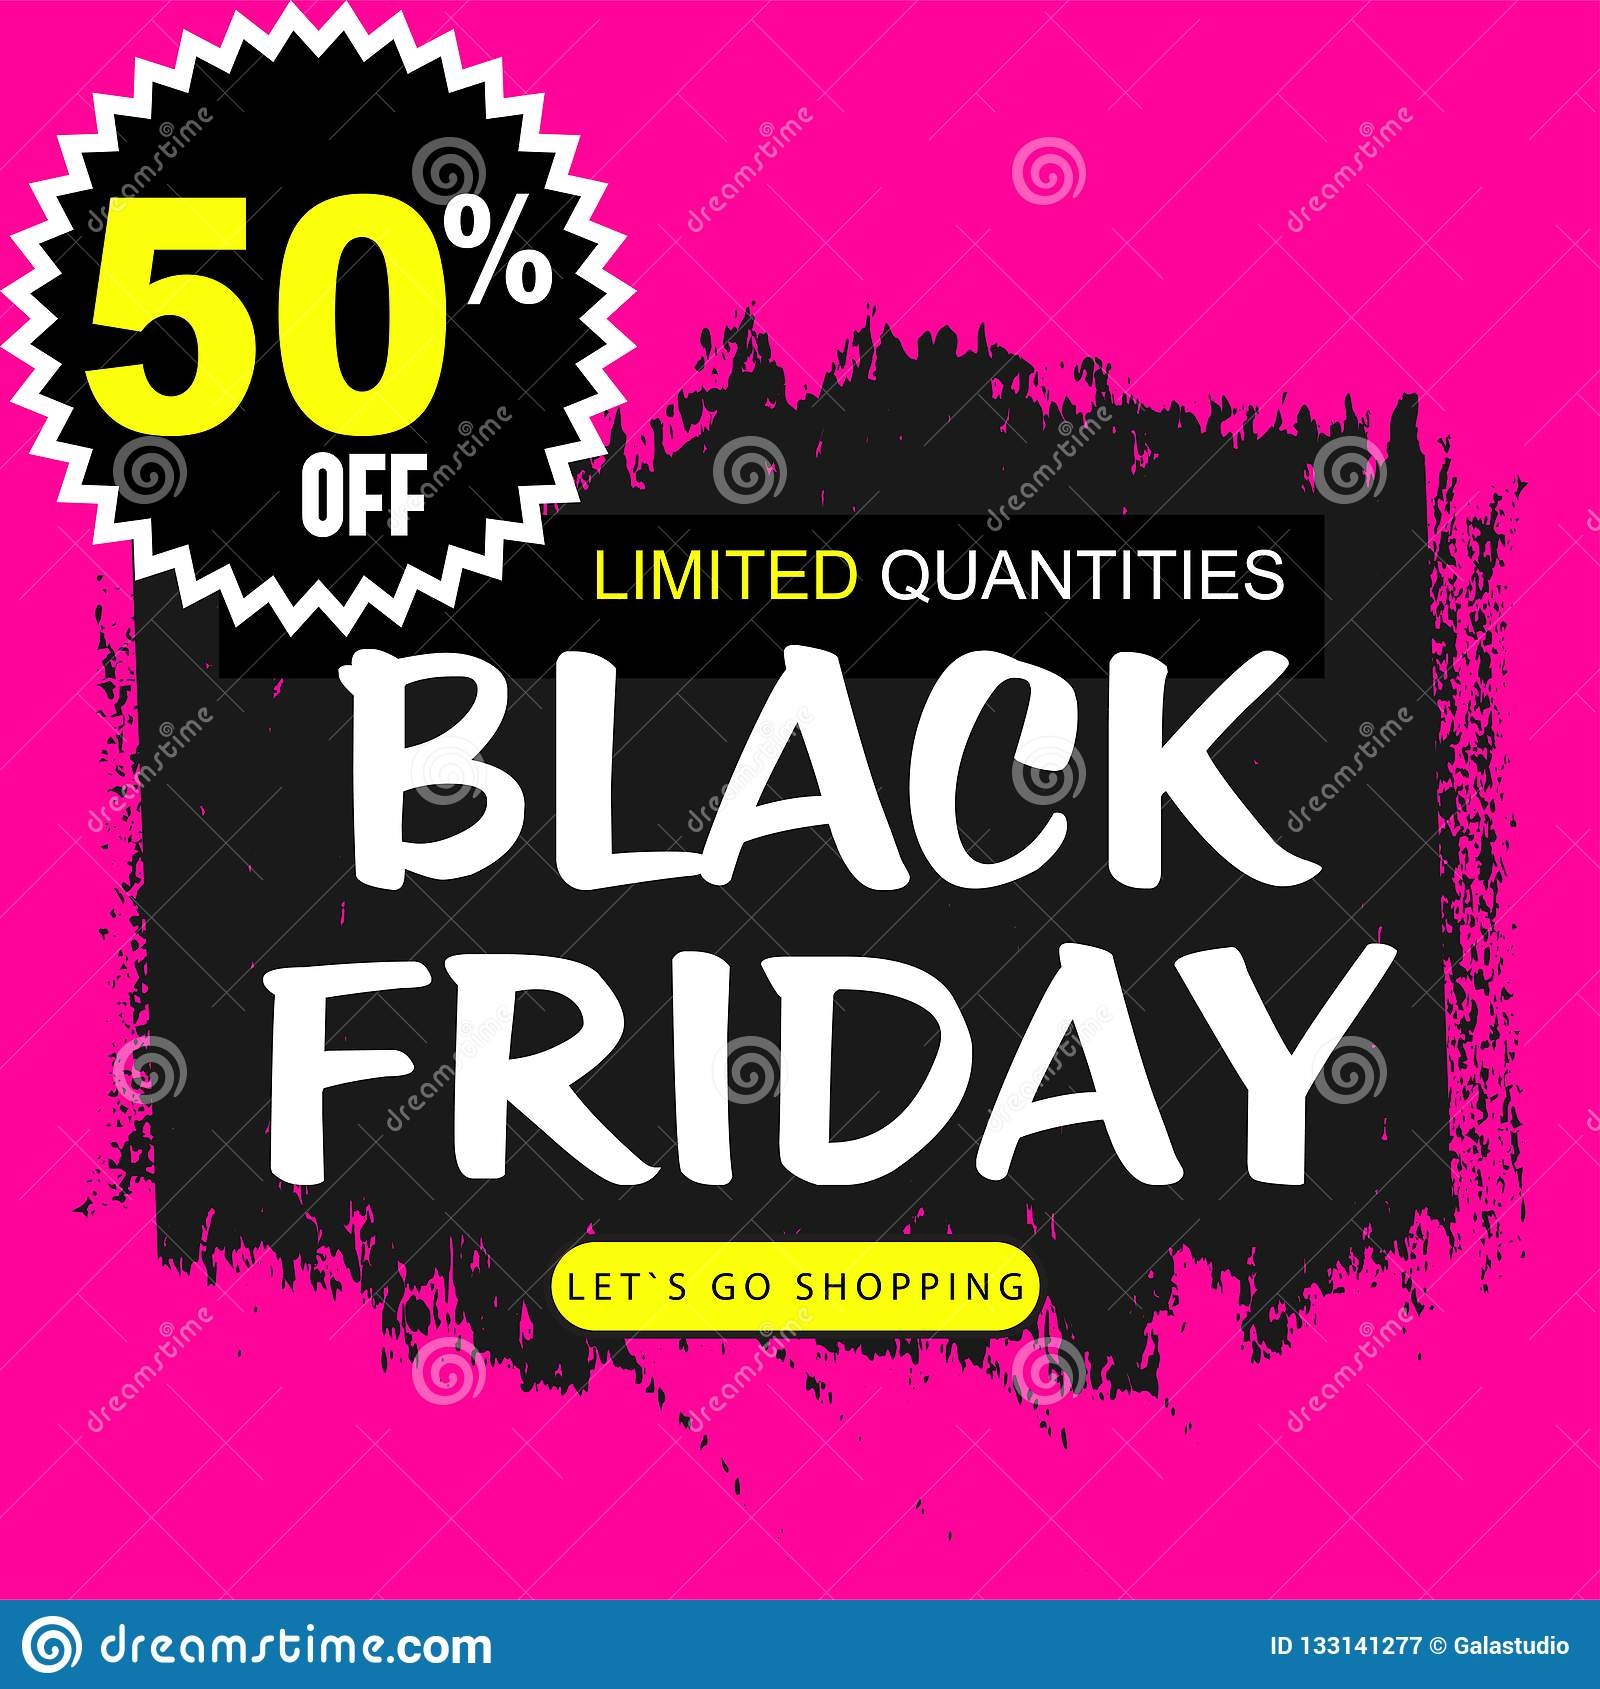 Black Friday Sale Template Logos And Cards For Design Stock Illustration Illustration Of Business Design 133141277